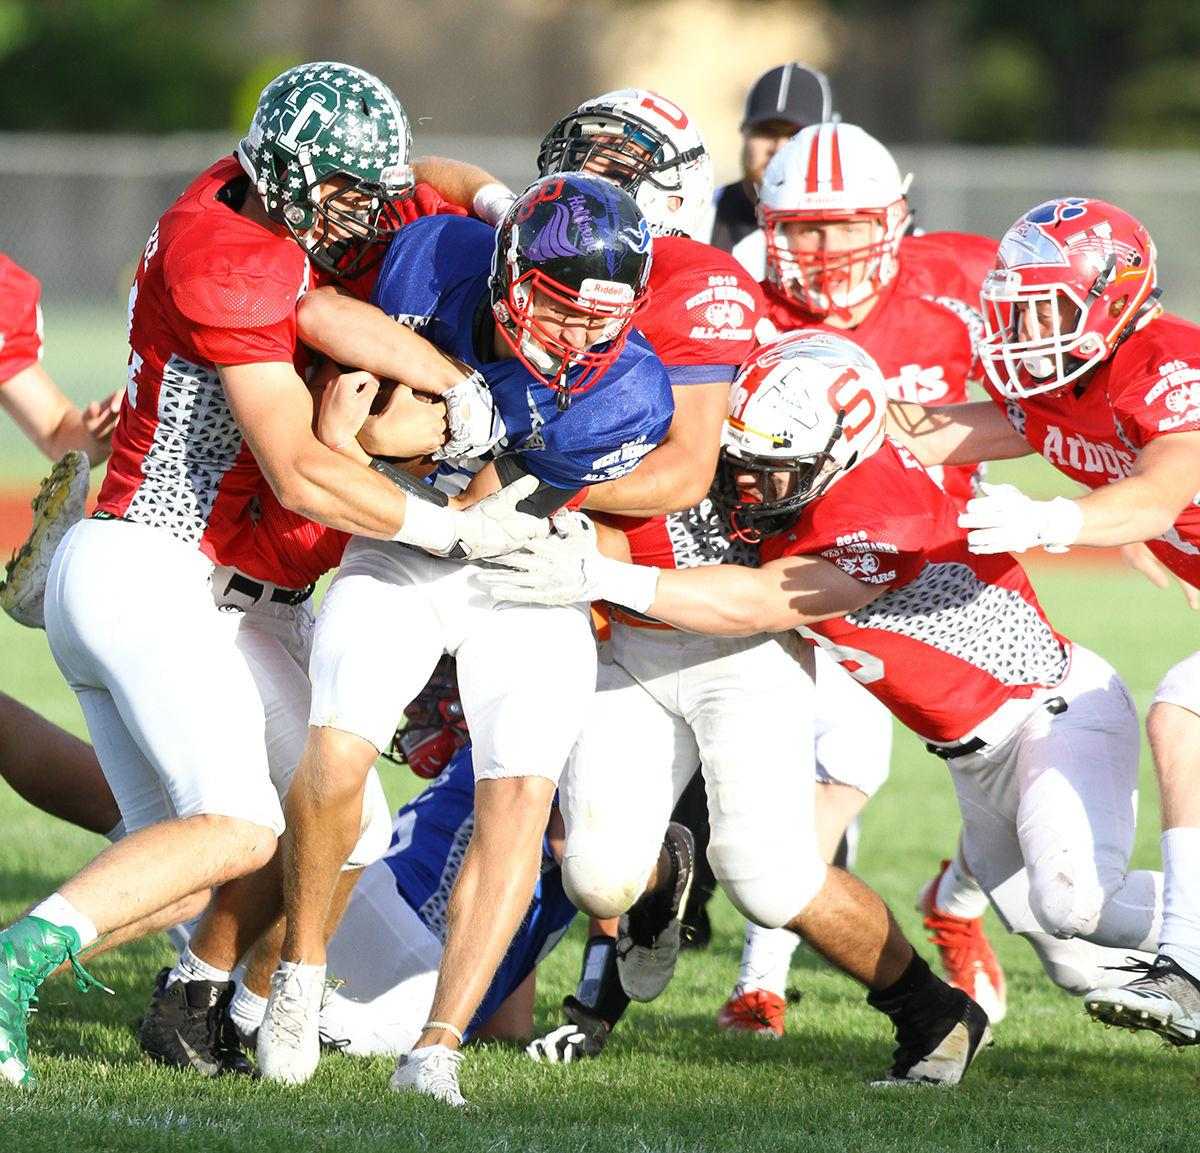 Photos: West Nebraska All-Star Football Game 2019